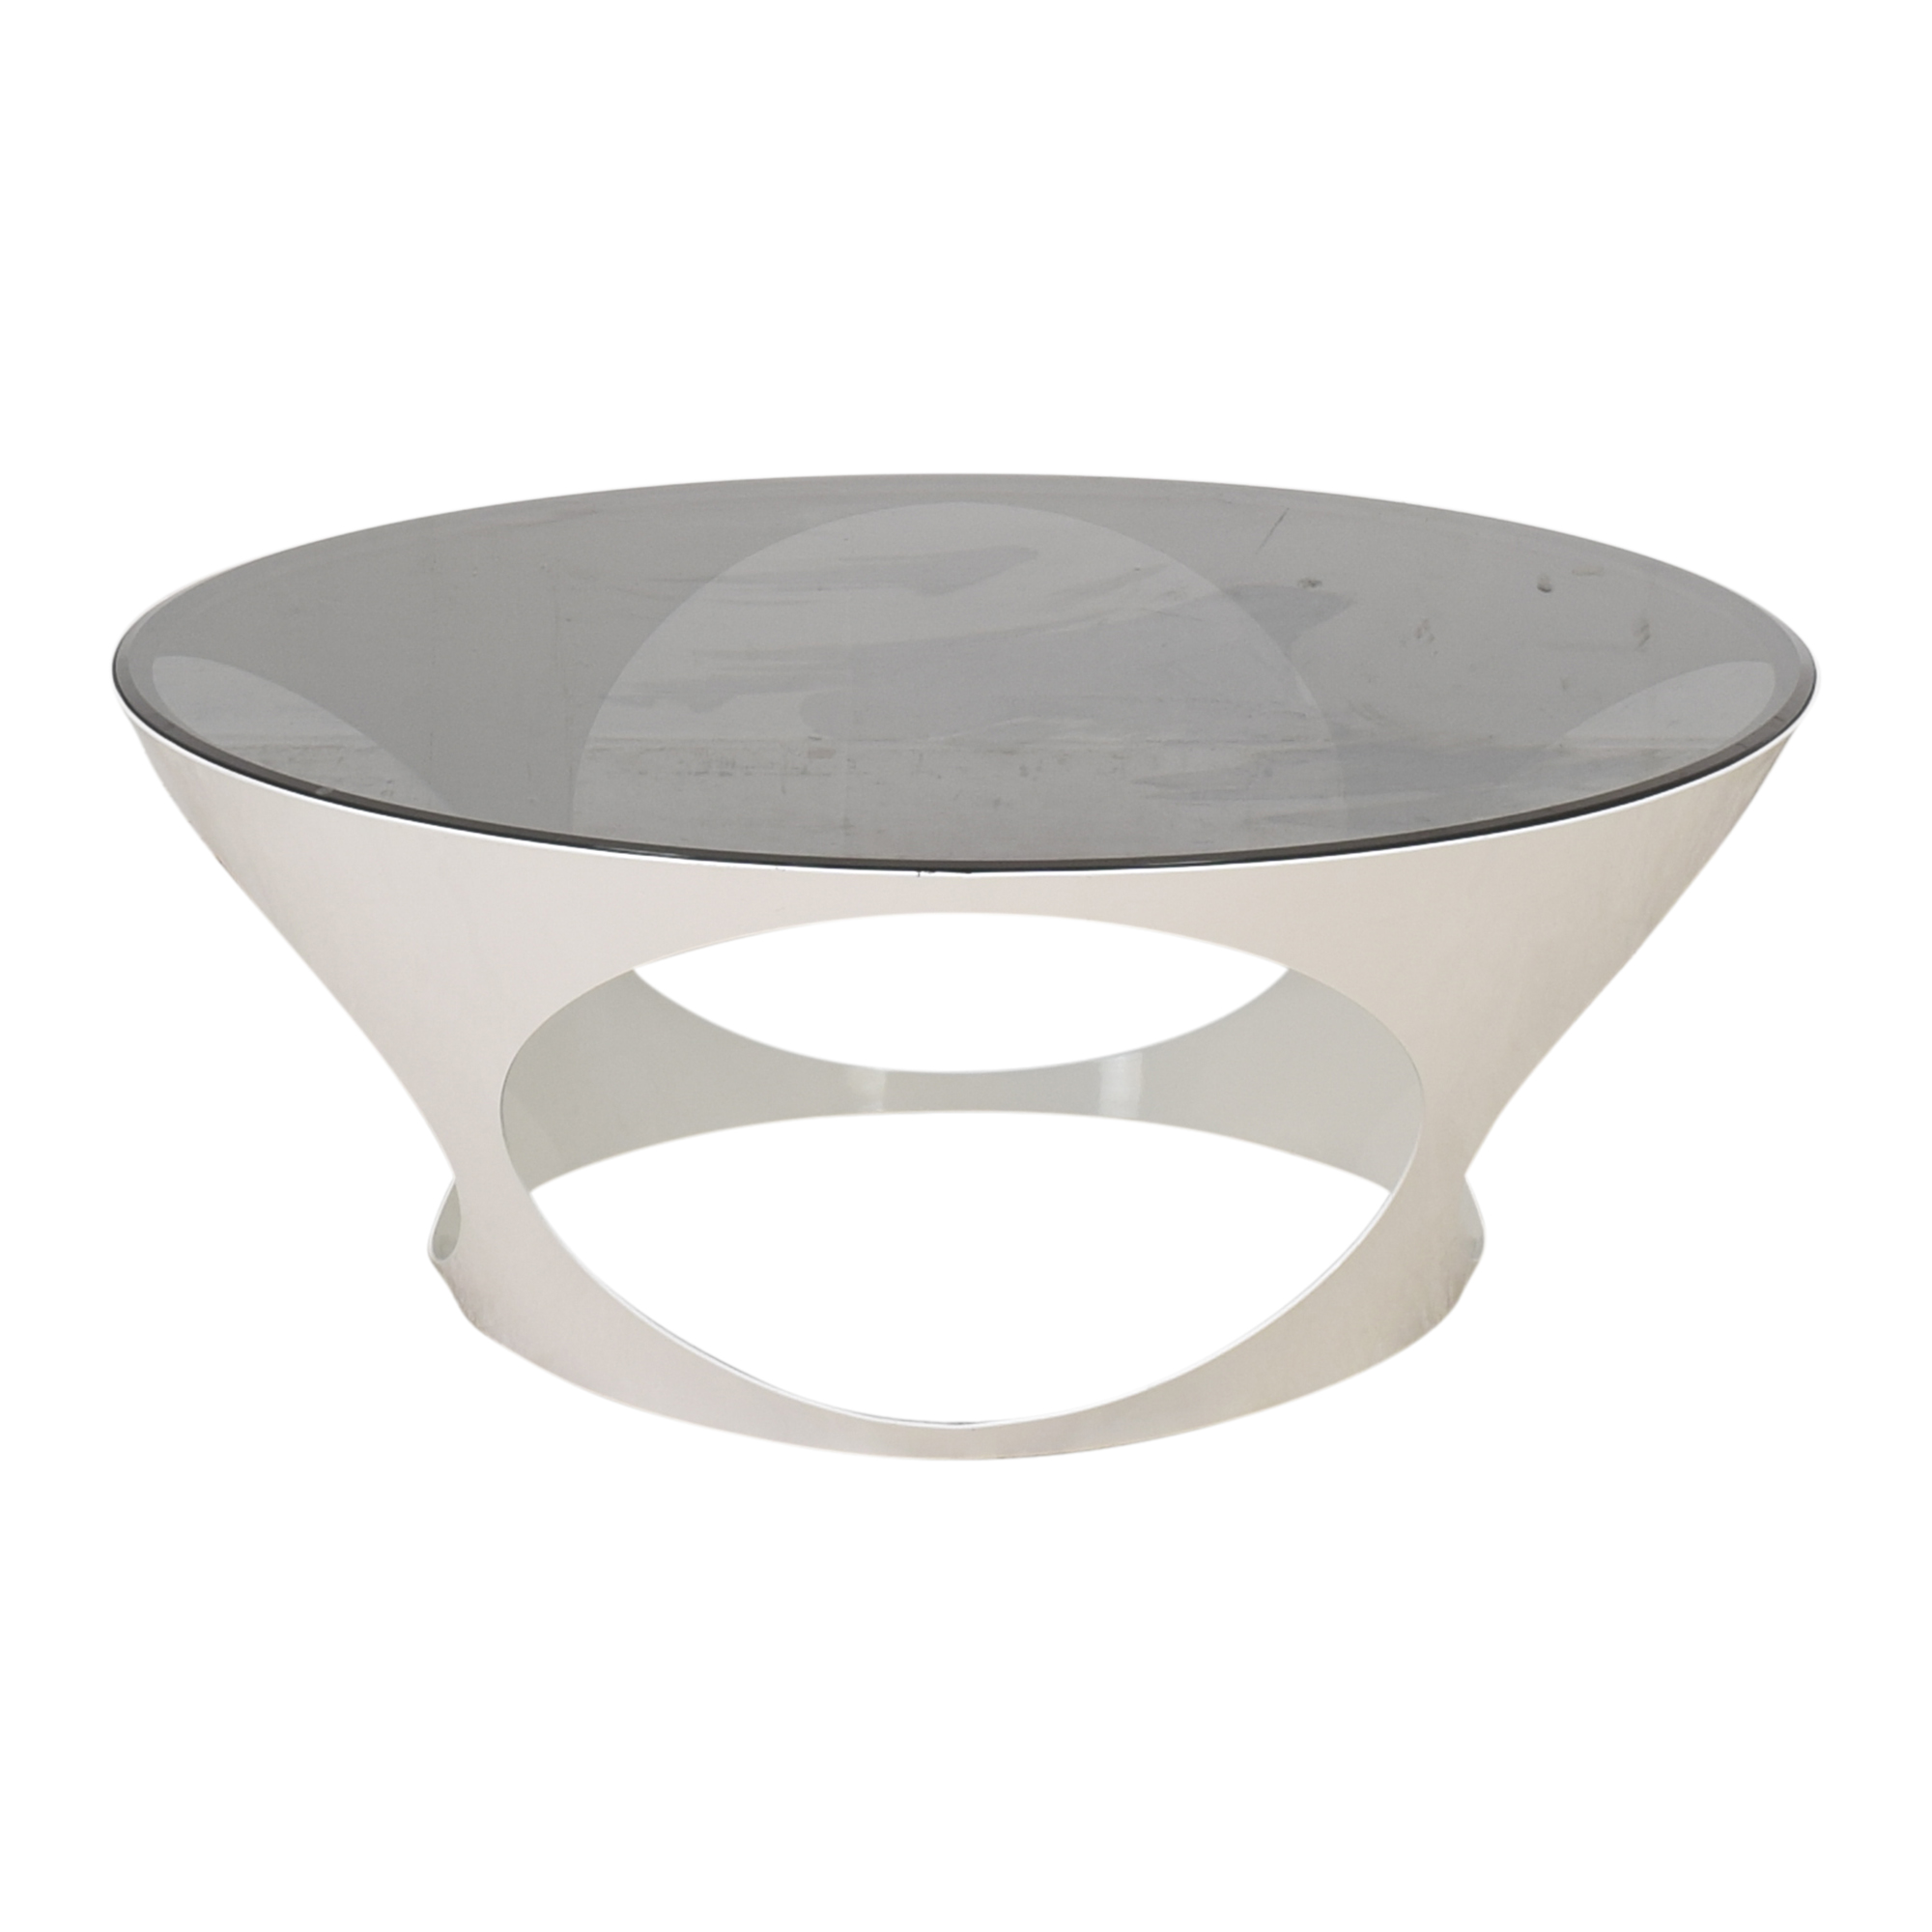 Vintage Modern Style Coffee Table / Tables